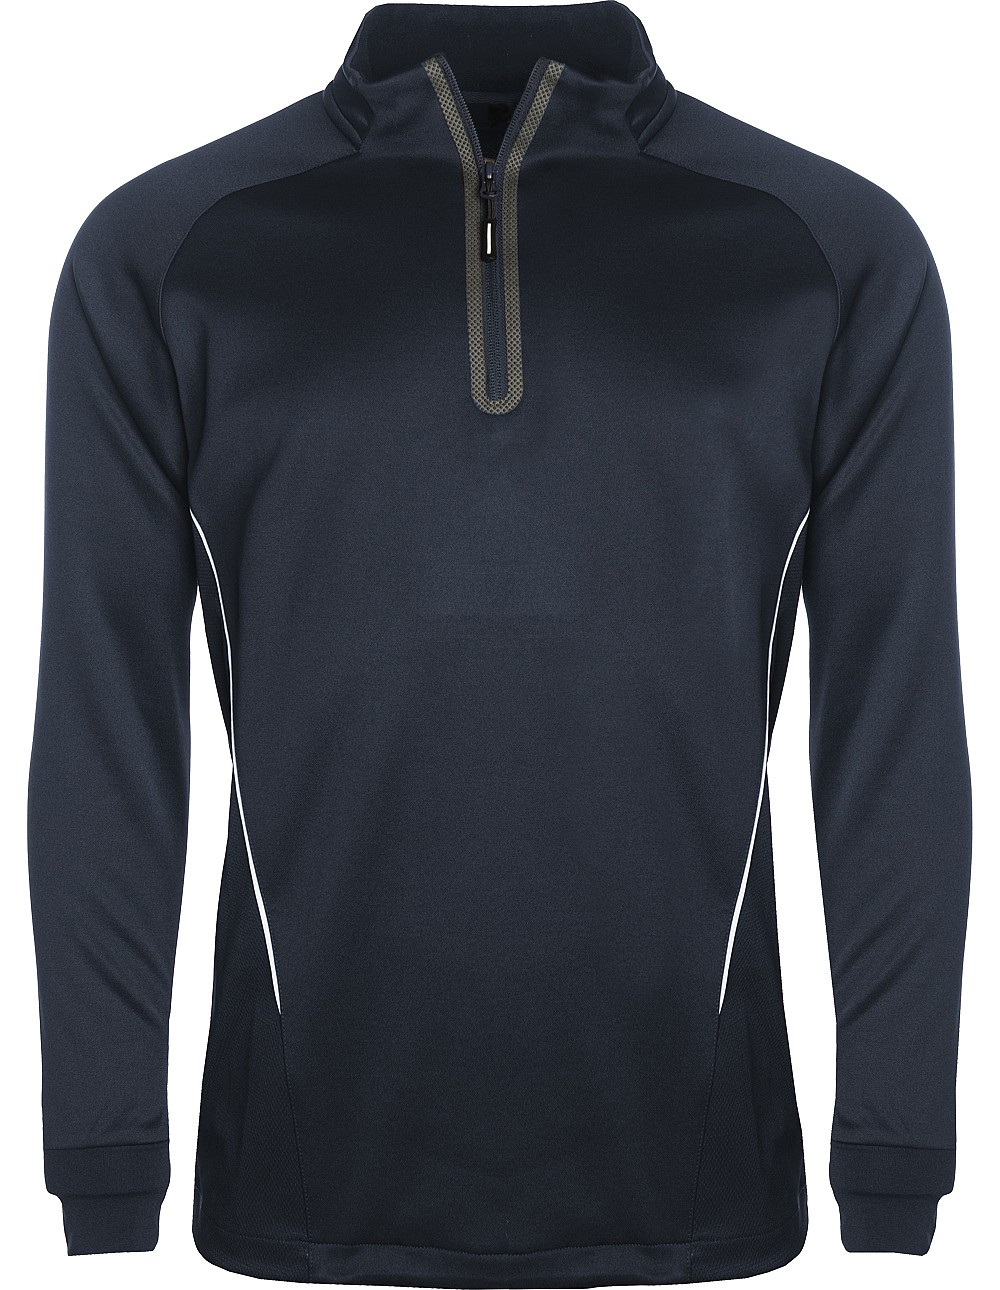 navy/white Qrt zip training top aptus